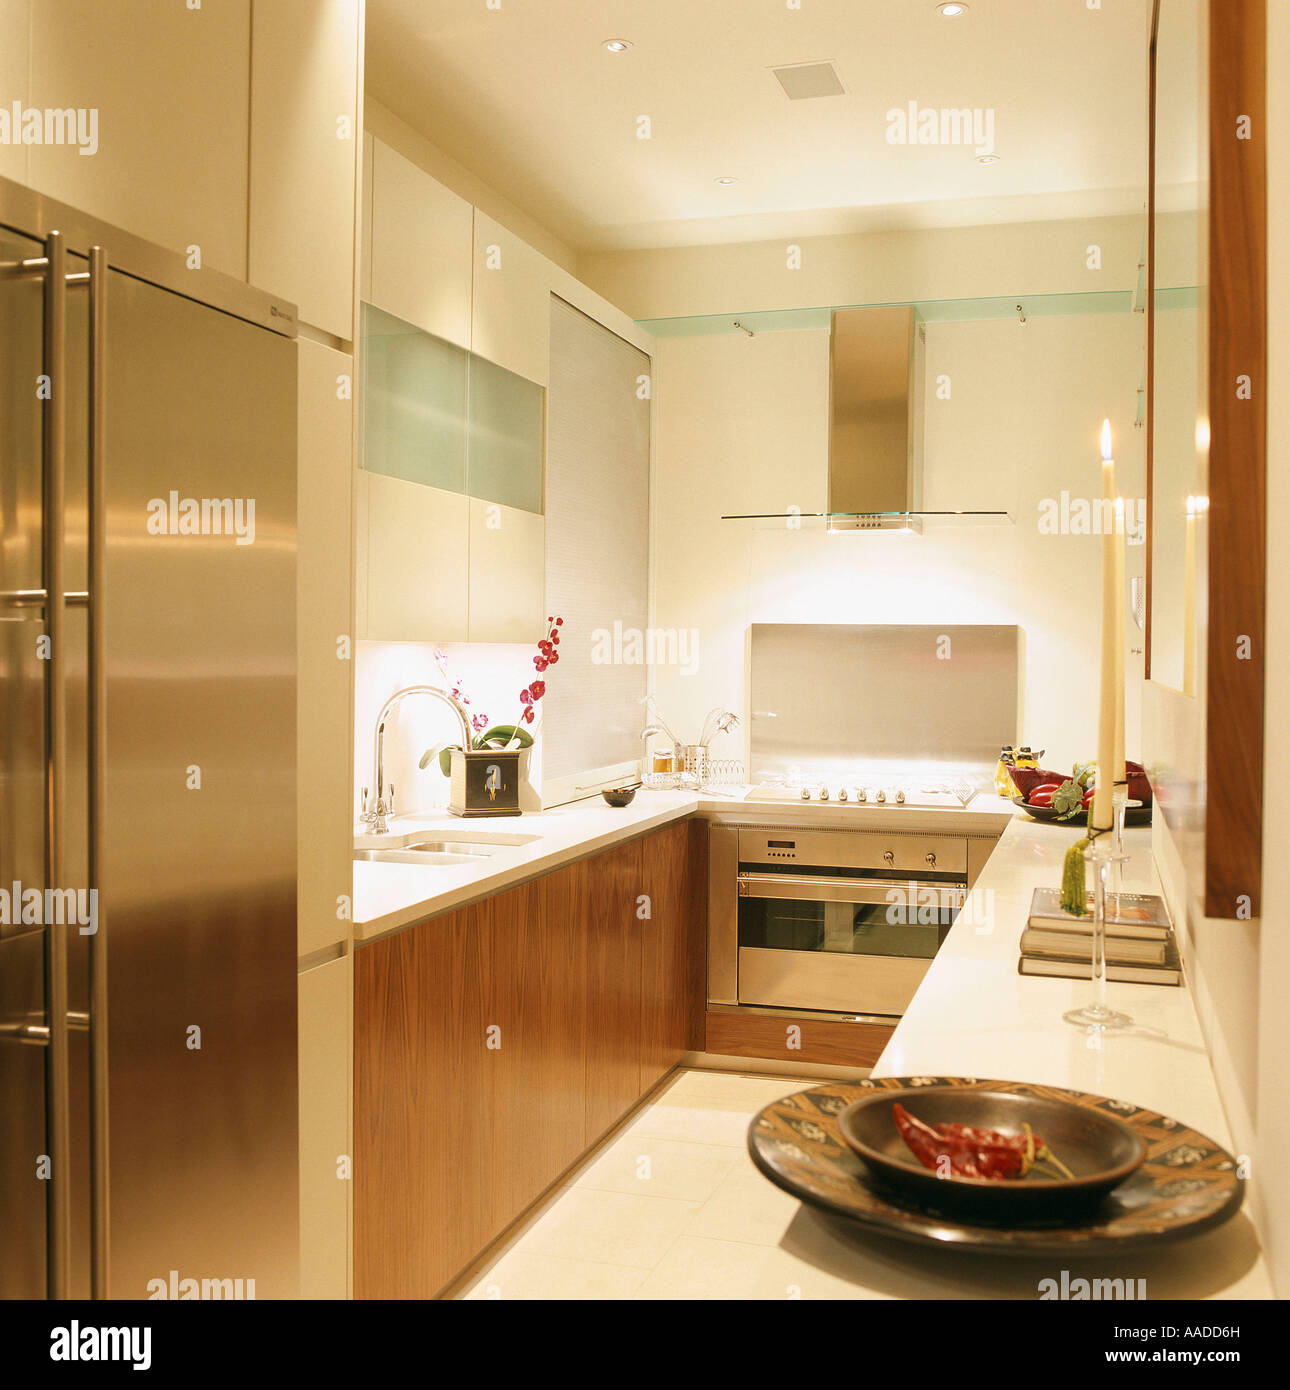 Galley kitchen with fitted wood units and stainless steel fridge - Stock Image